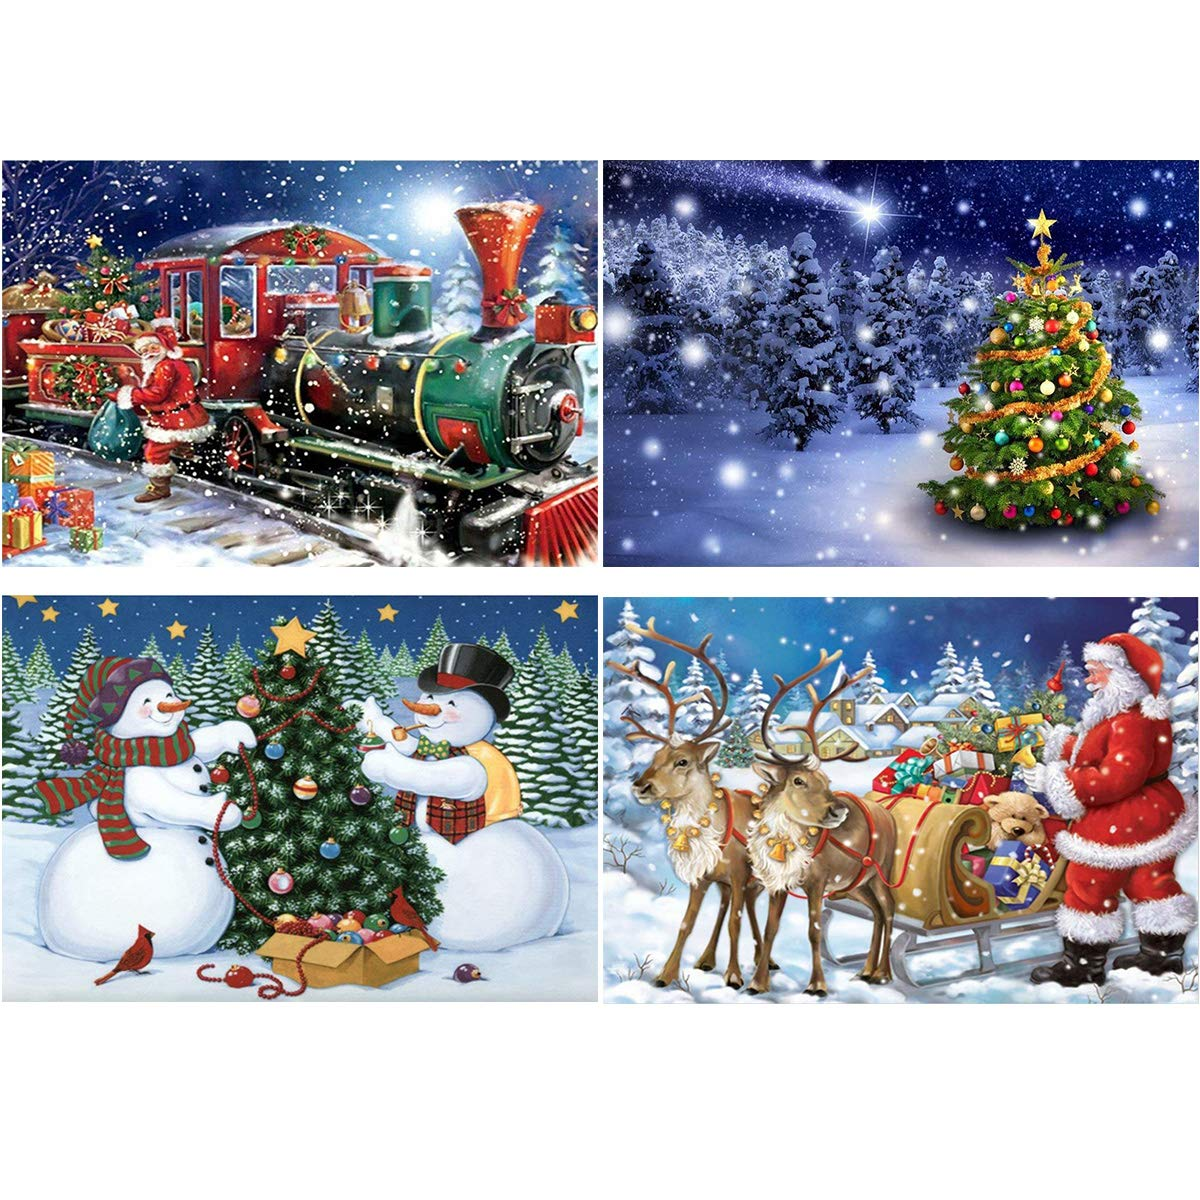 4 Pack 5D DIY Diamond Painting Kit Full Drill Wall Hanging Diamond Painting Set for Christmas Home Wall, Living Room Decor (Snowman) Suptee